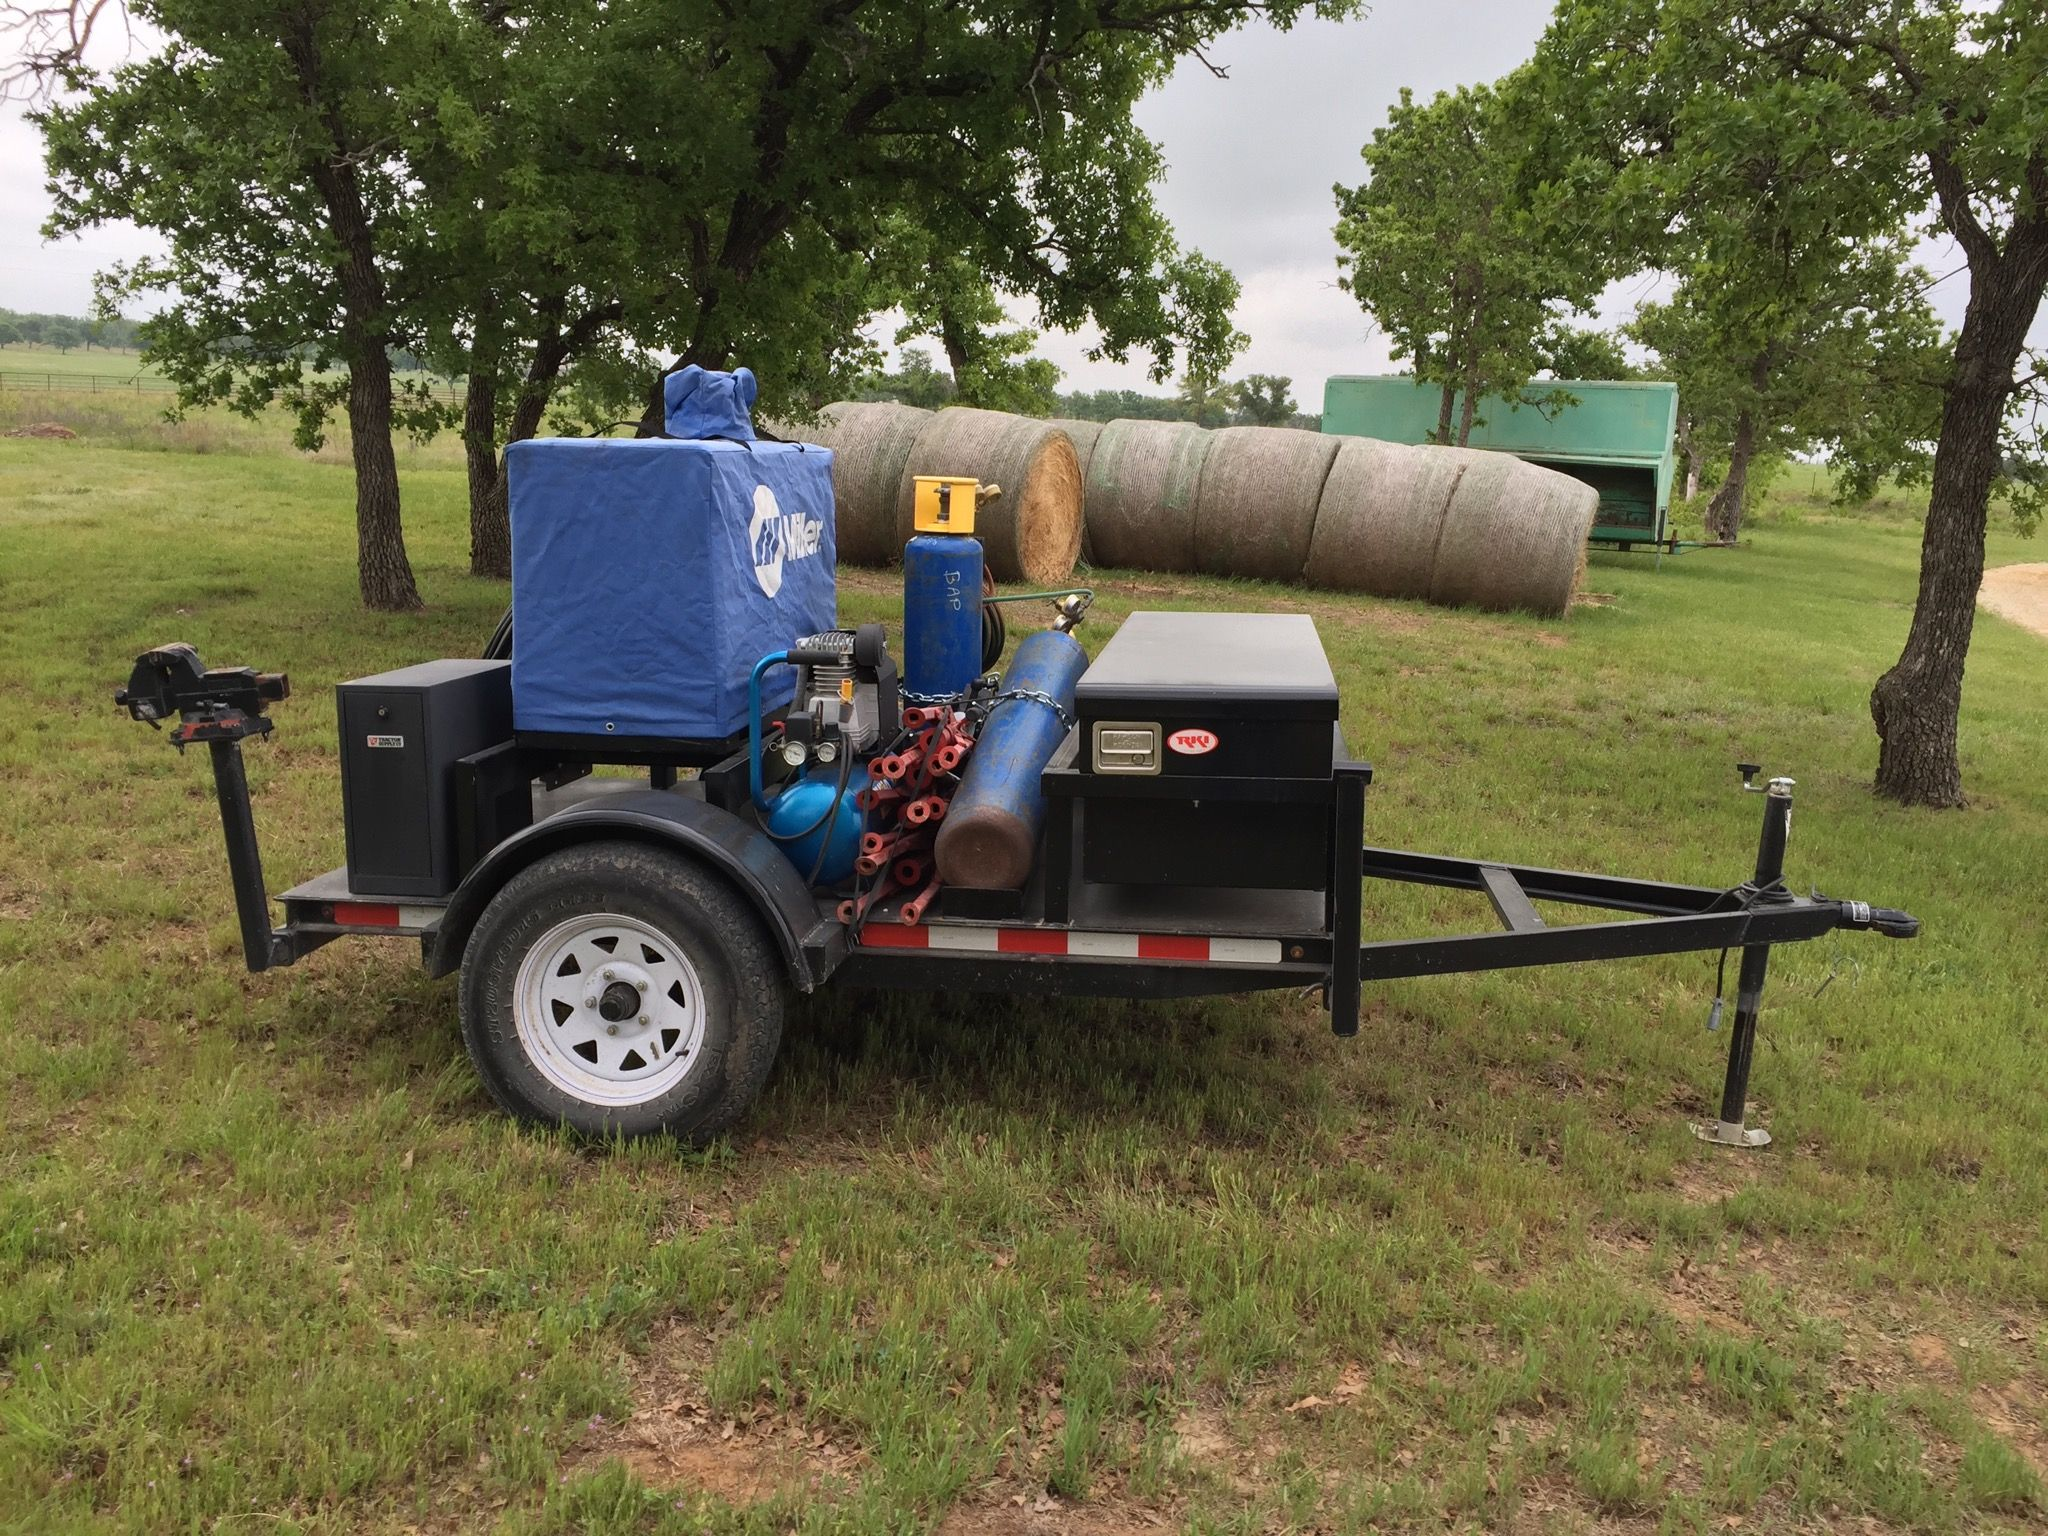 Miller welding trailer. With puma air compressor